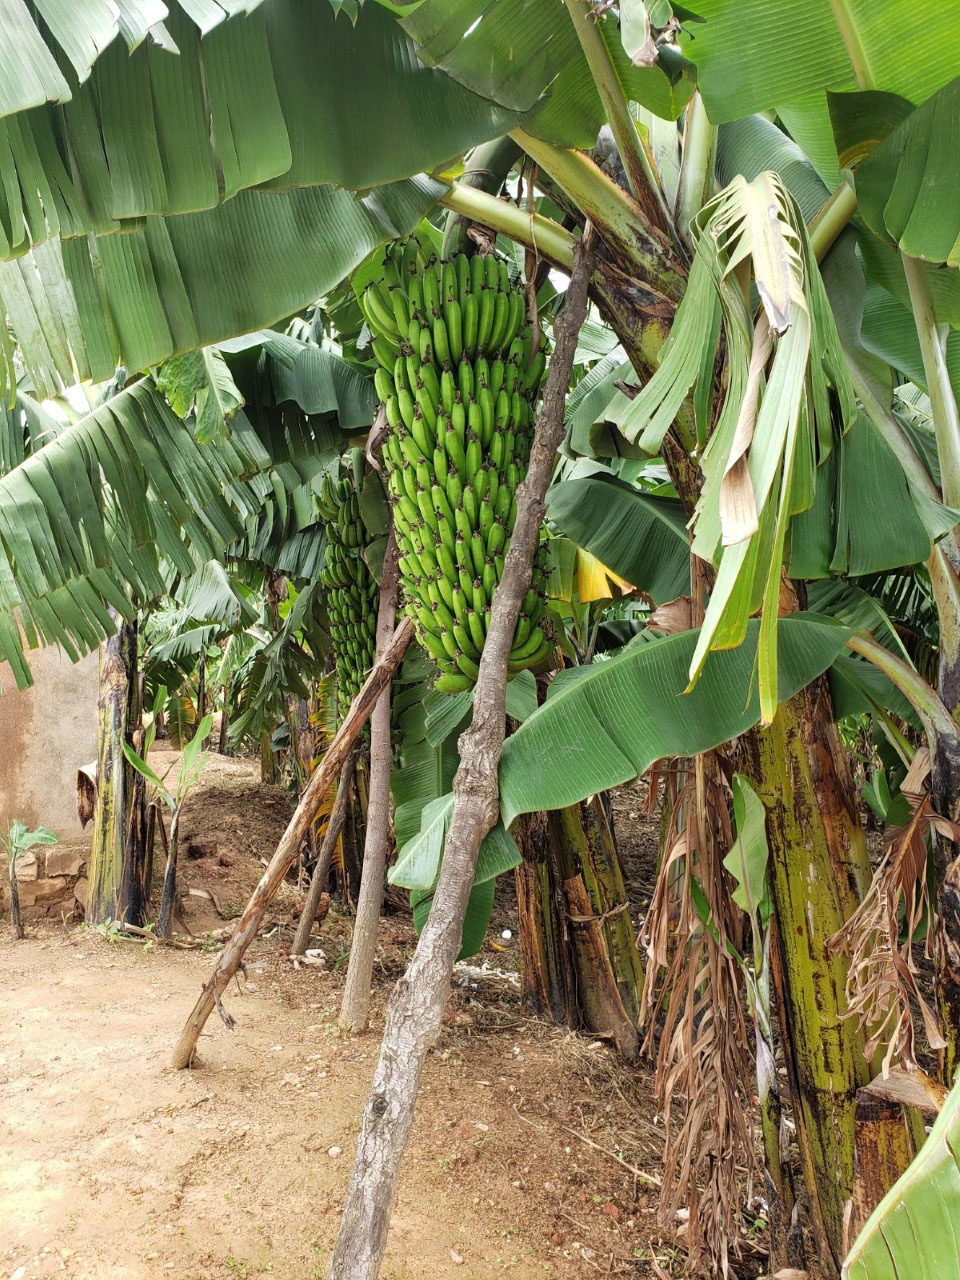 A banana tree planted with funds borrowed from the savings program.